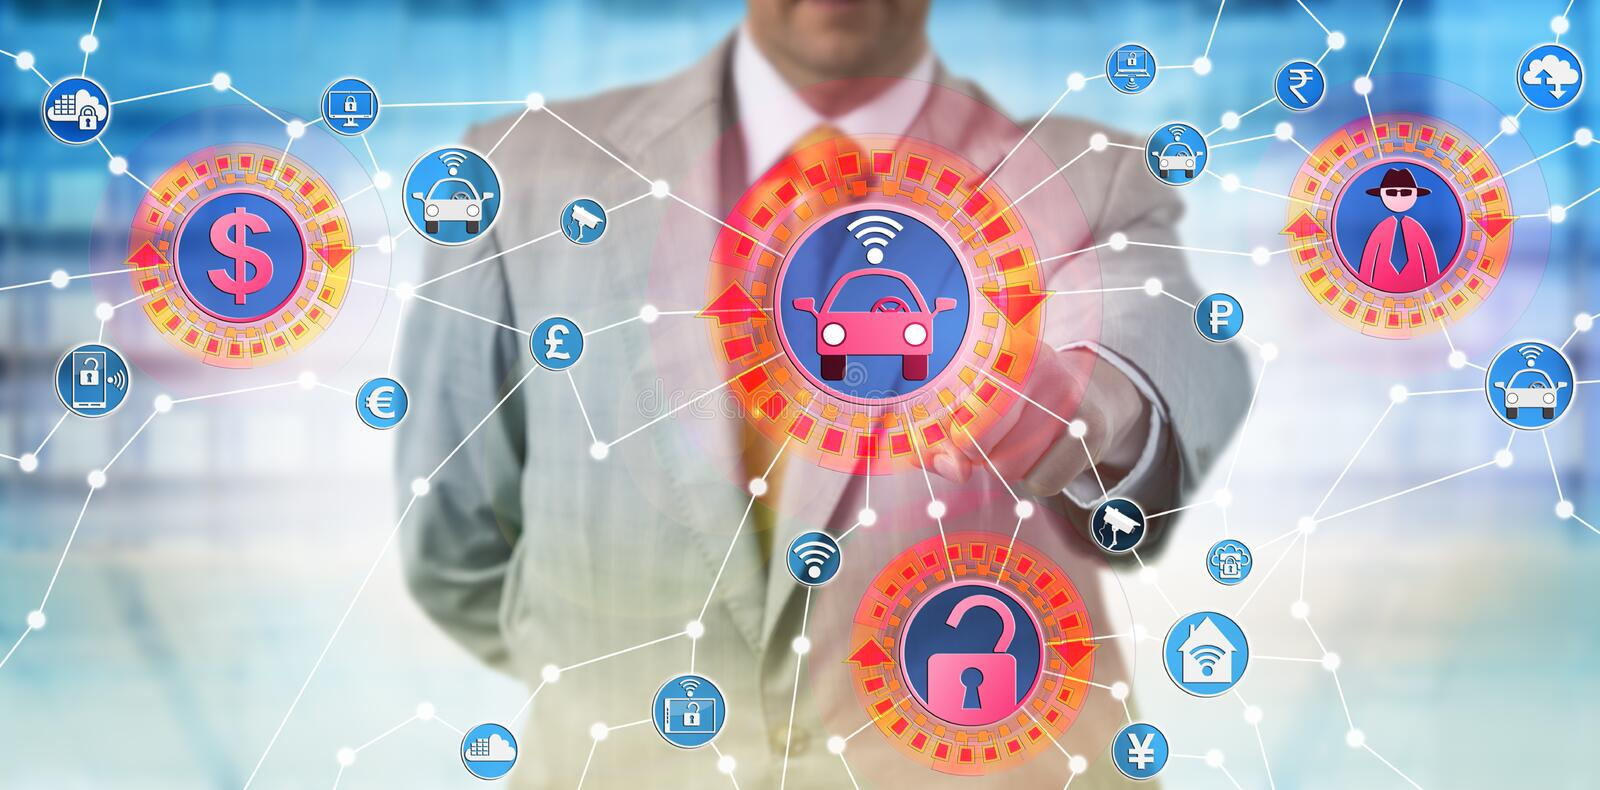 Consultant Presenting IoT Cyber-Hijacking Attack stock photos